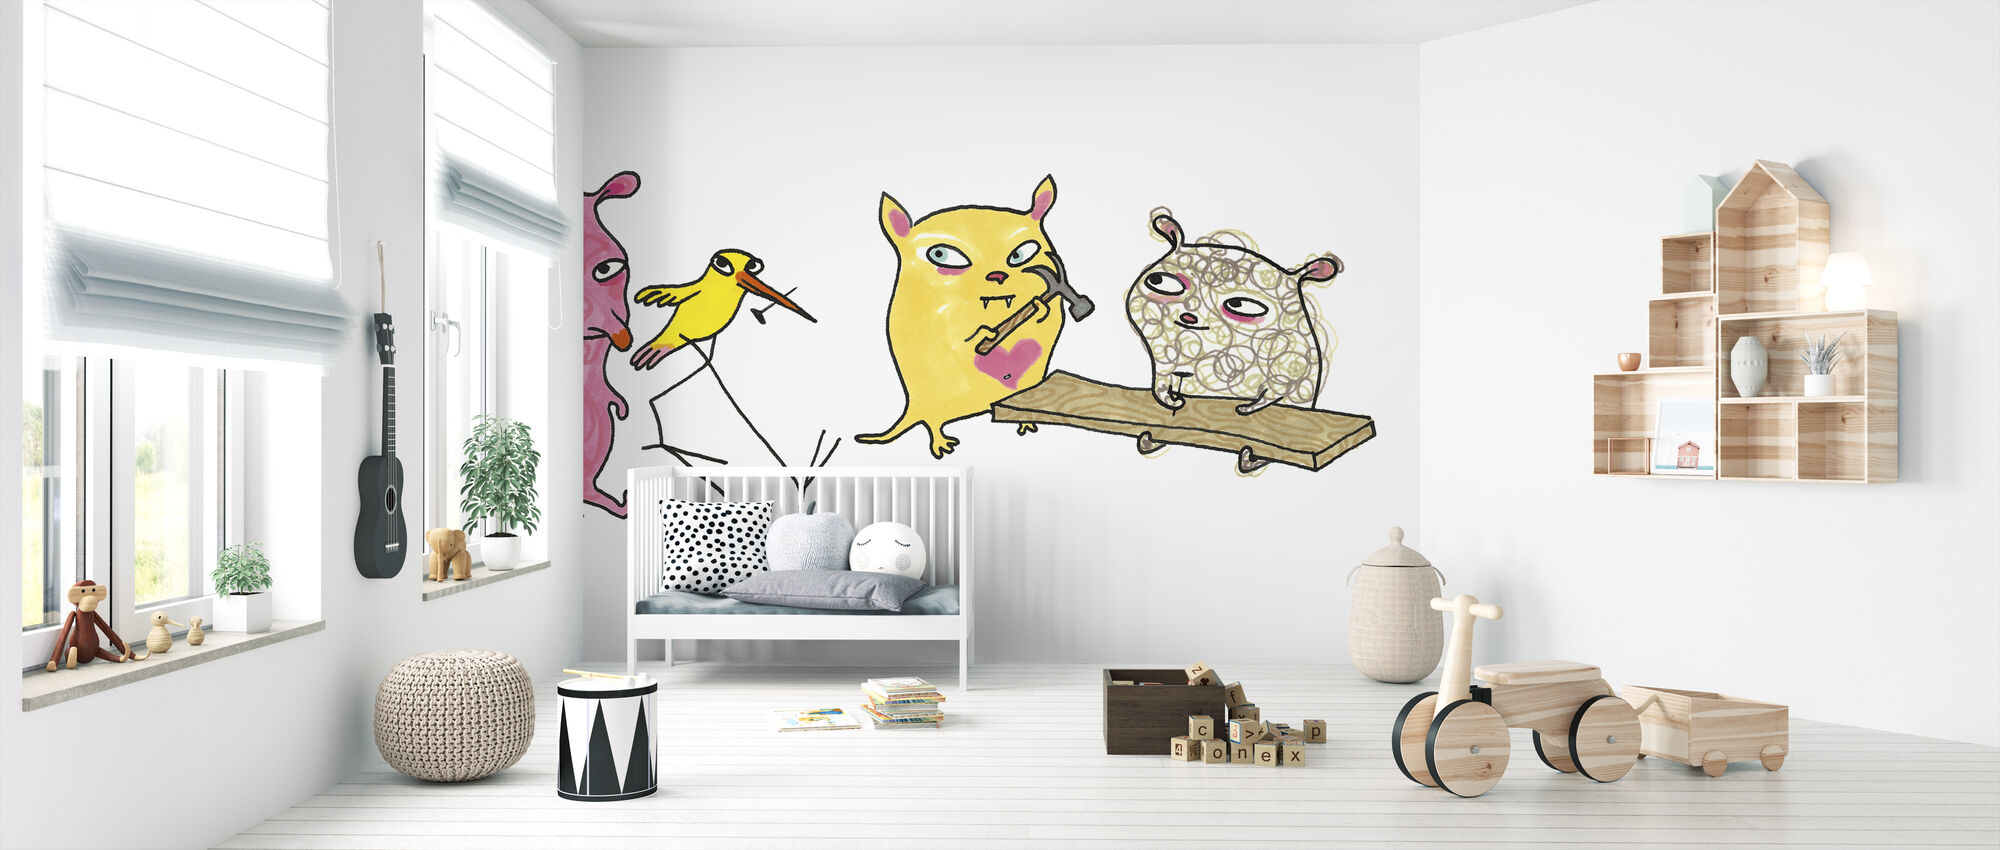 Vem spikar - Wallpaper - Nursery